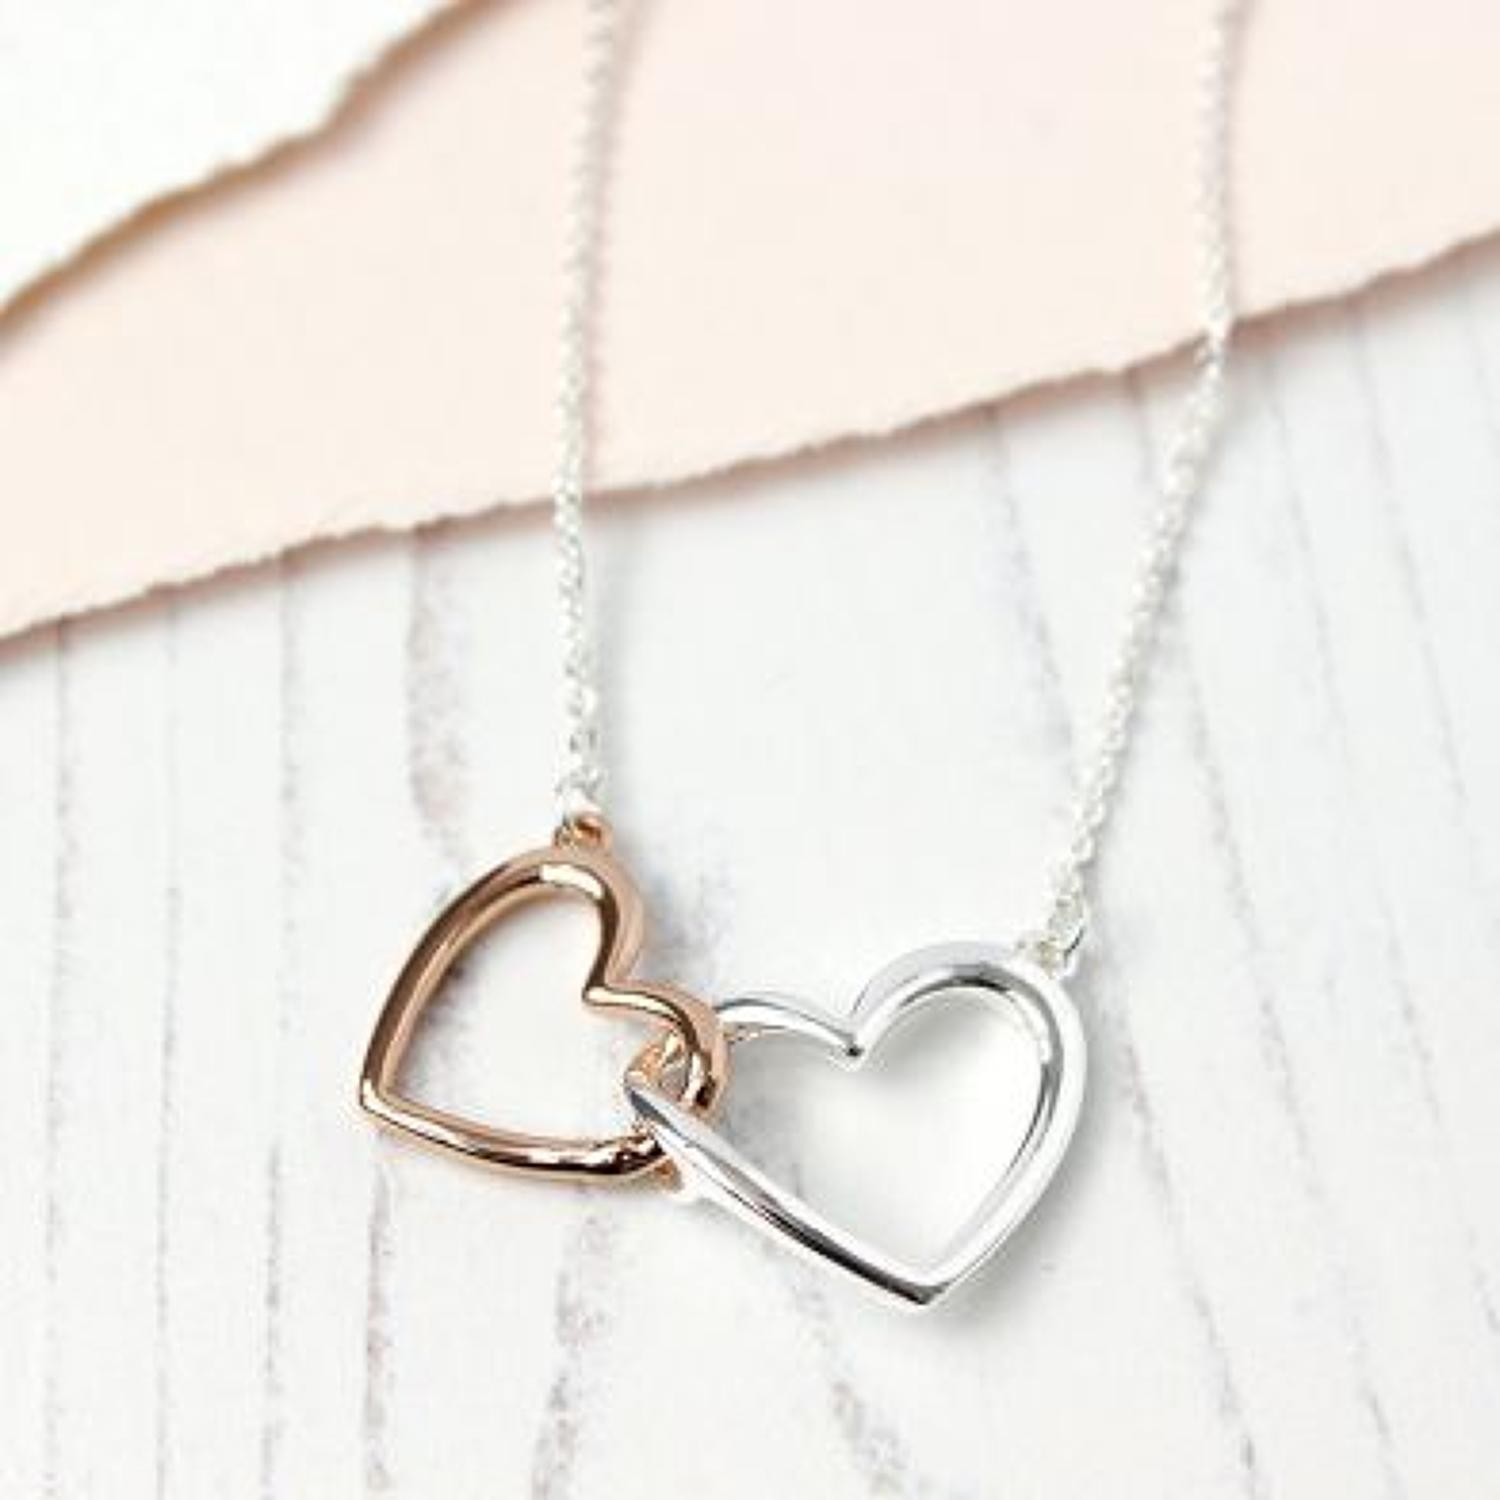 Silver rose gold linked hearts necklace